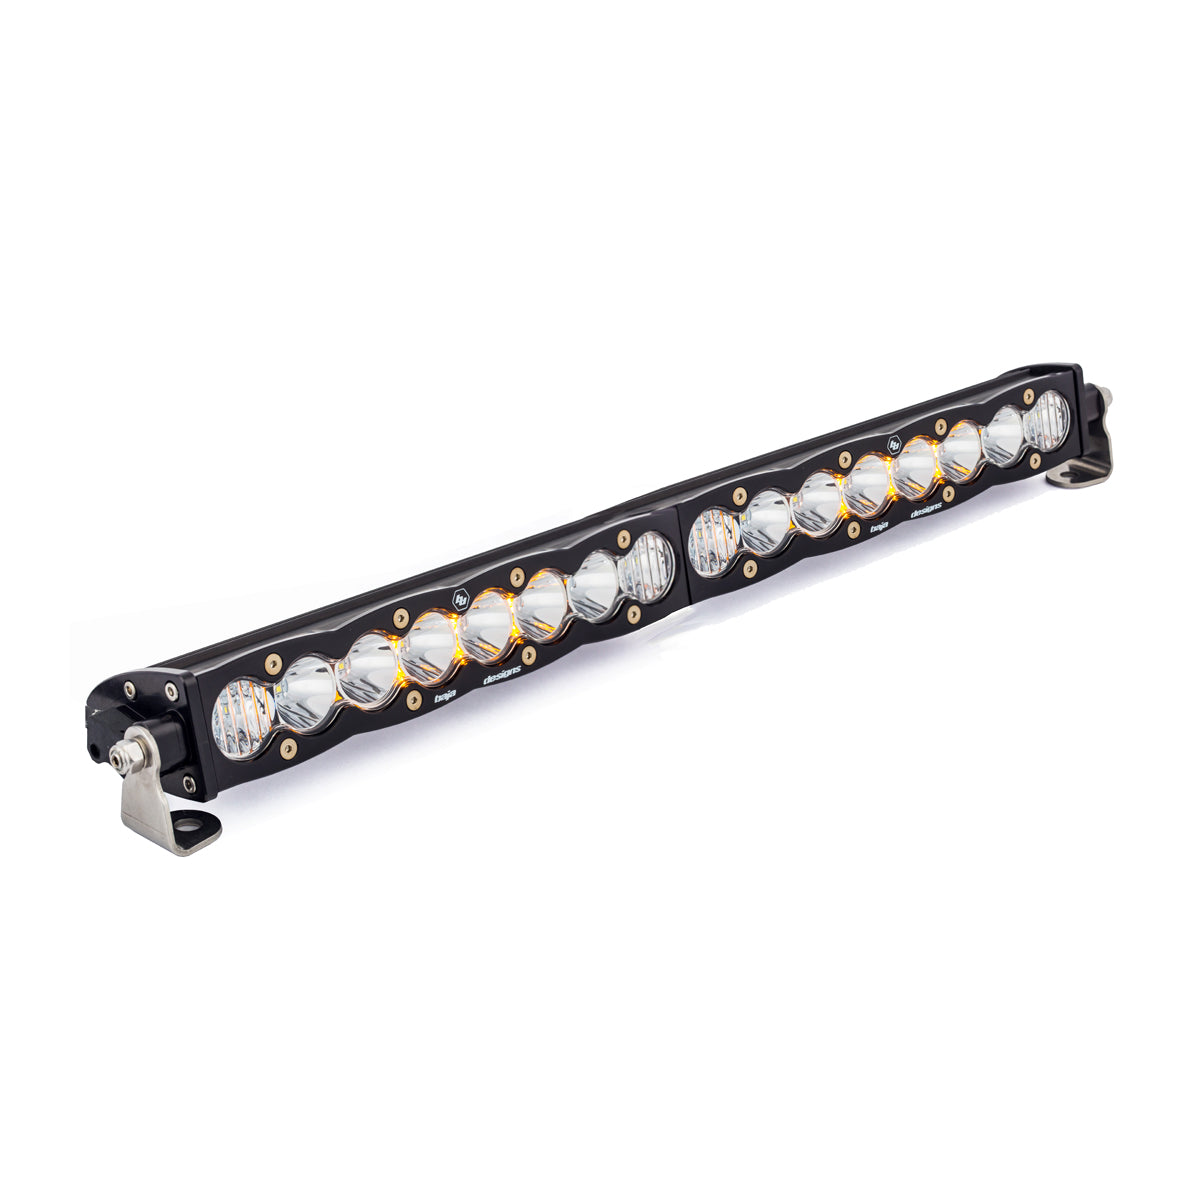 Baja Designs 702003 S8 20 Inch Driving Combo Pattern LED Light Bar